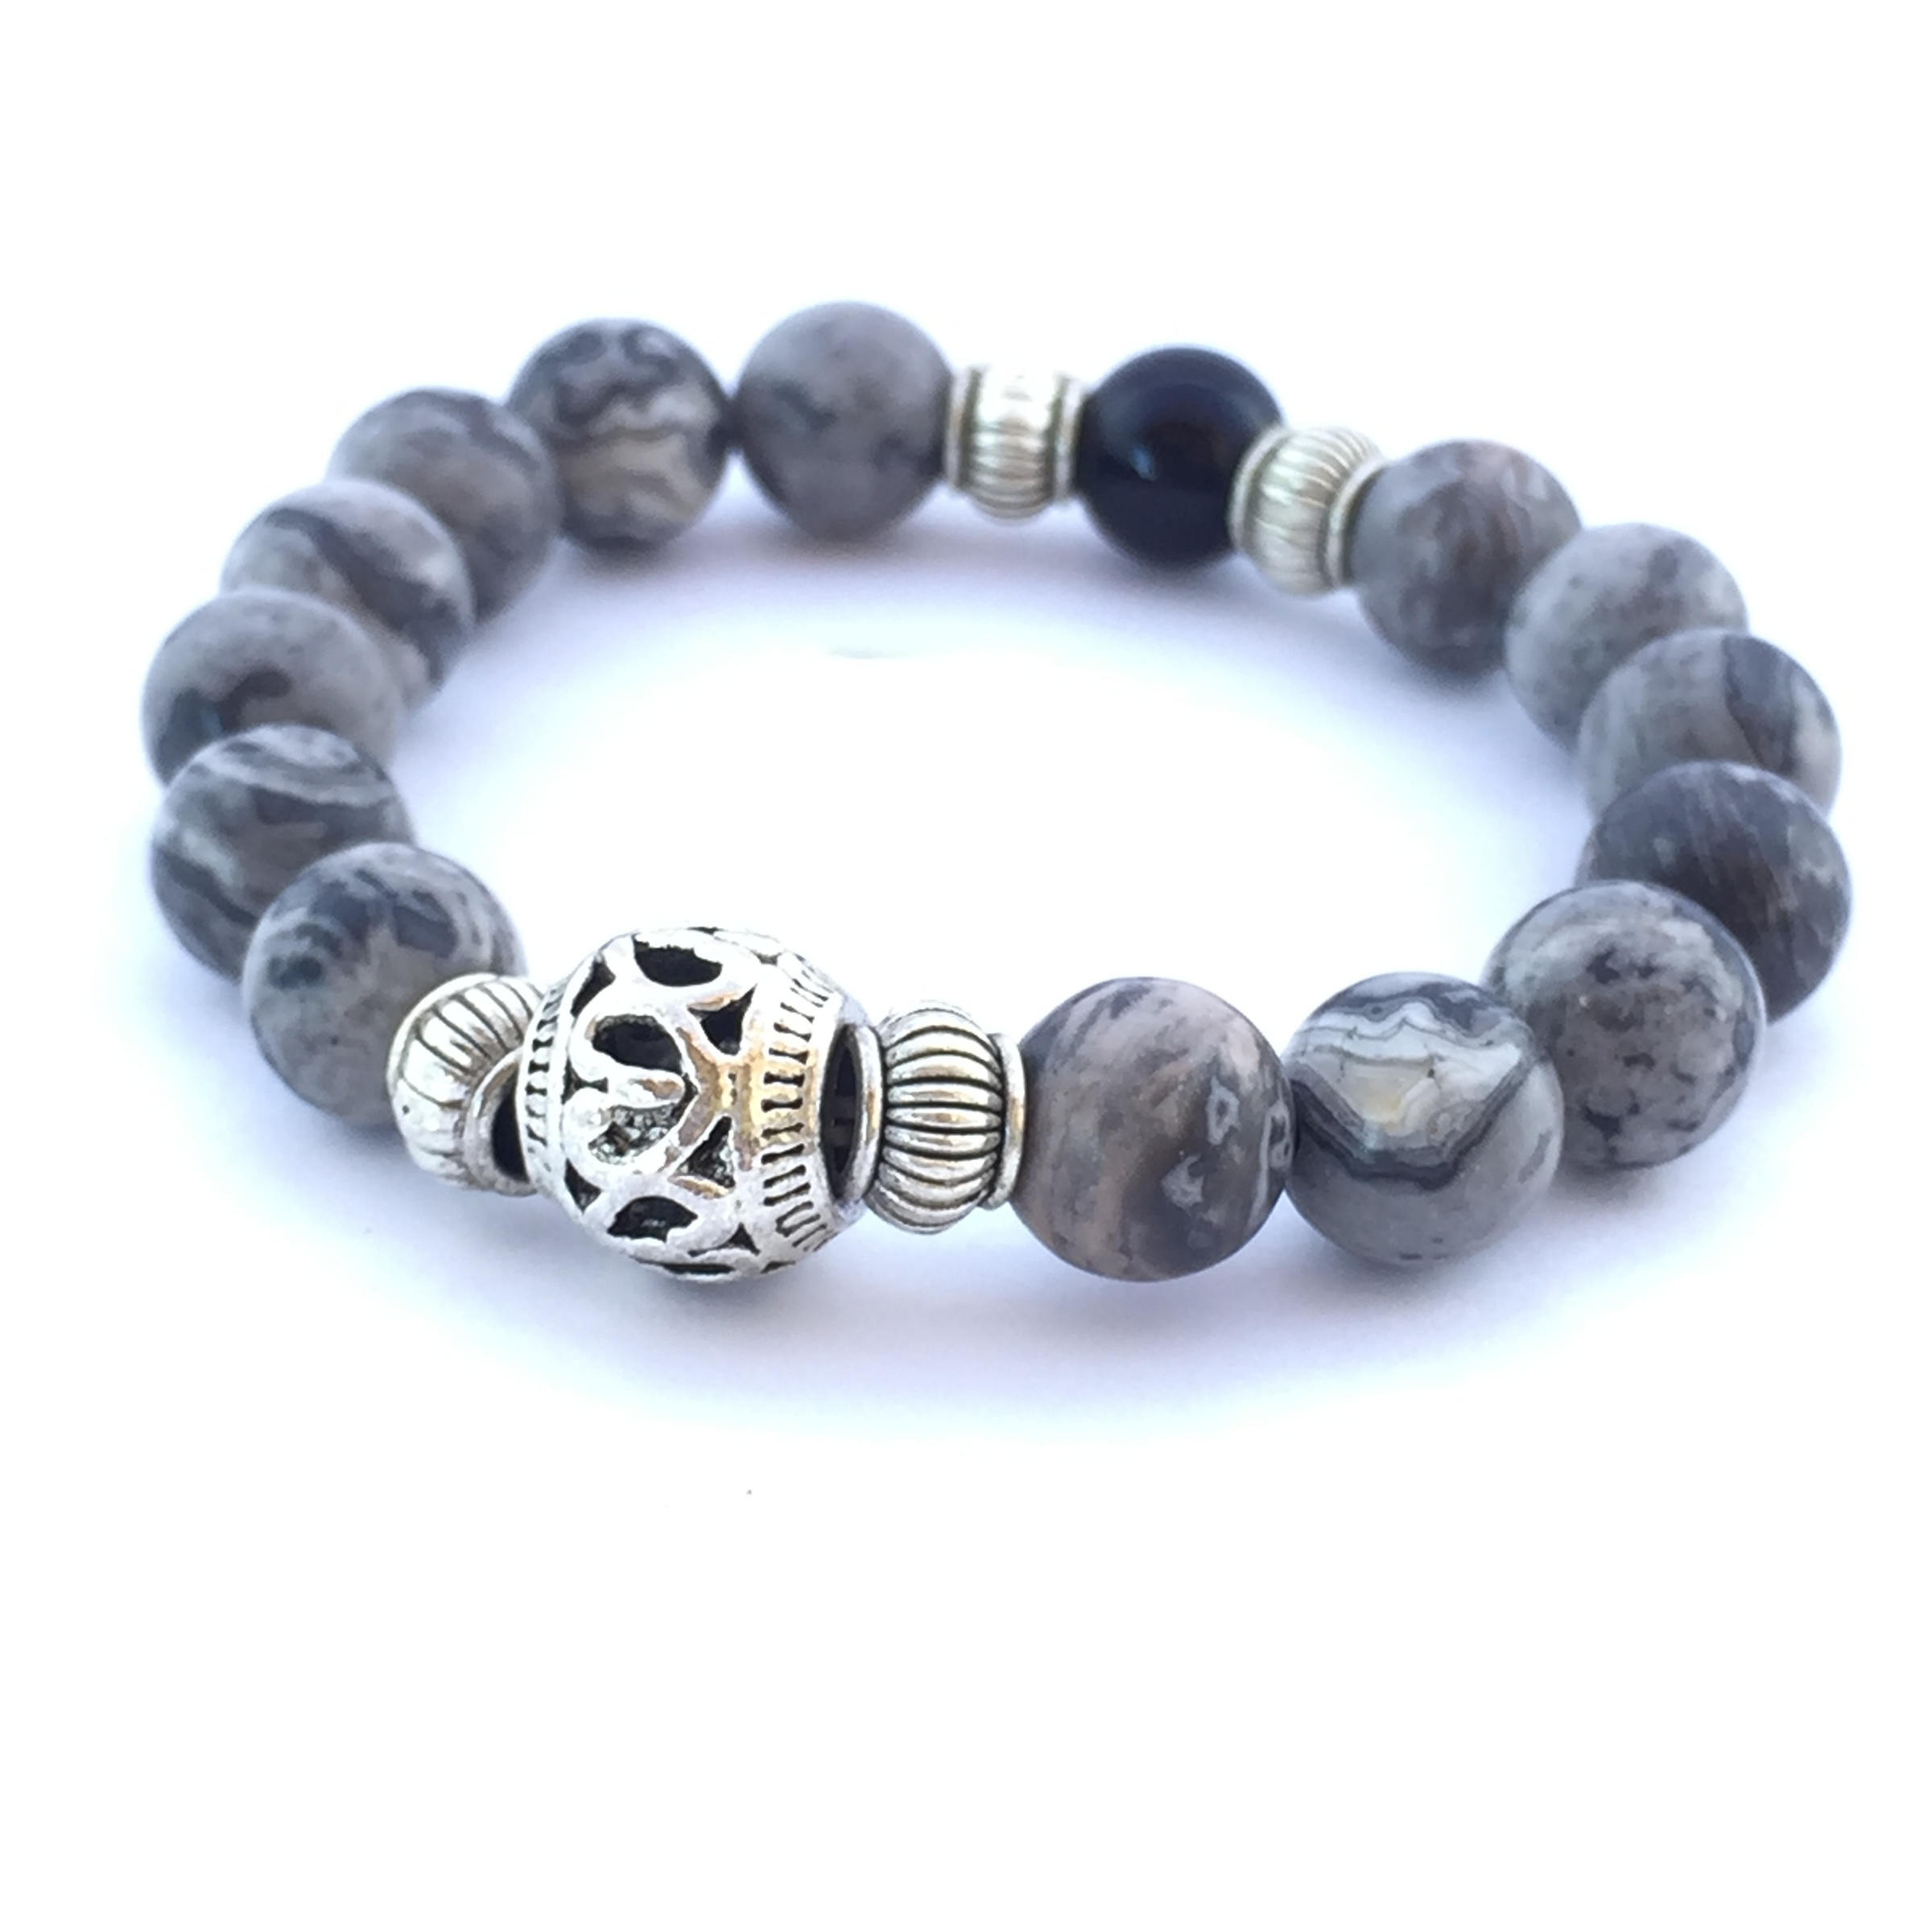 the mala jasper tree fancy bracelet